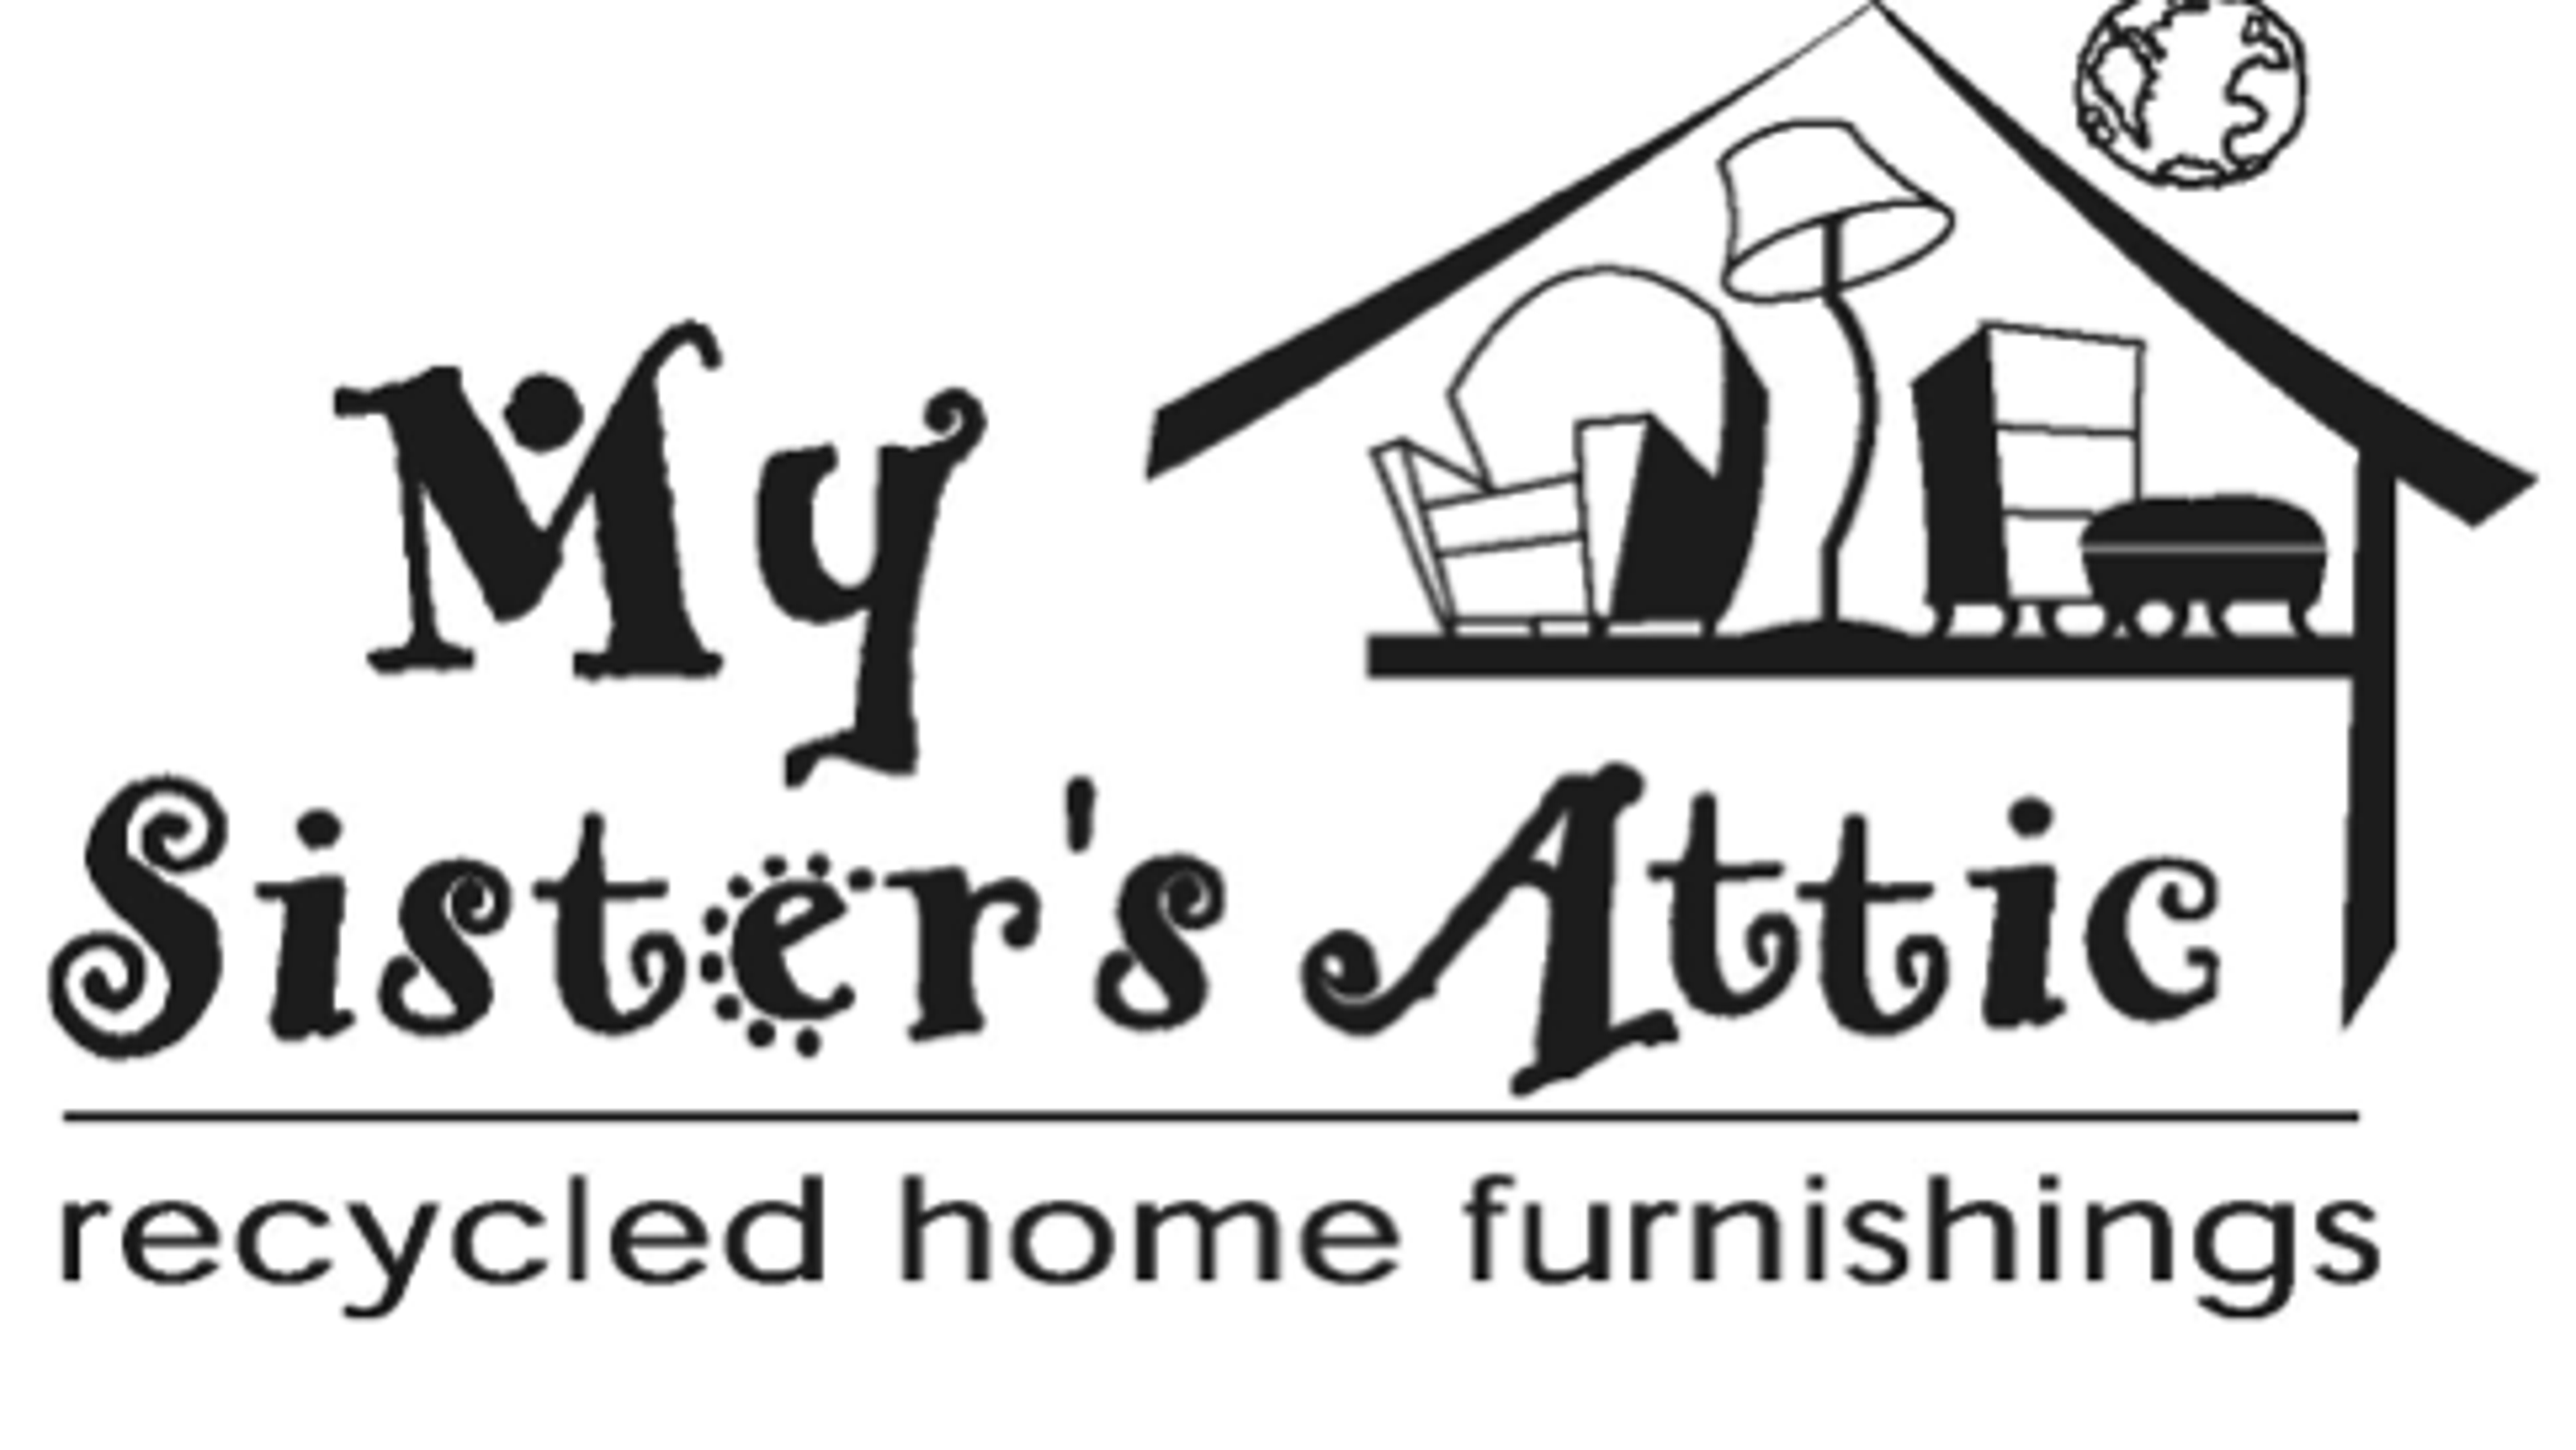 9/6: My Sister's Attic grand reopening